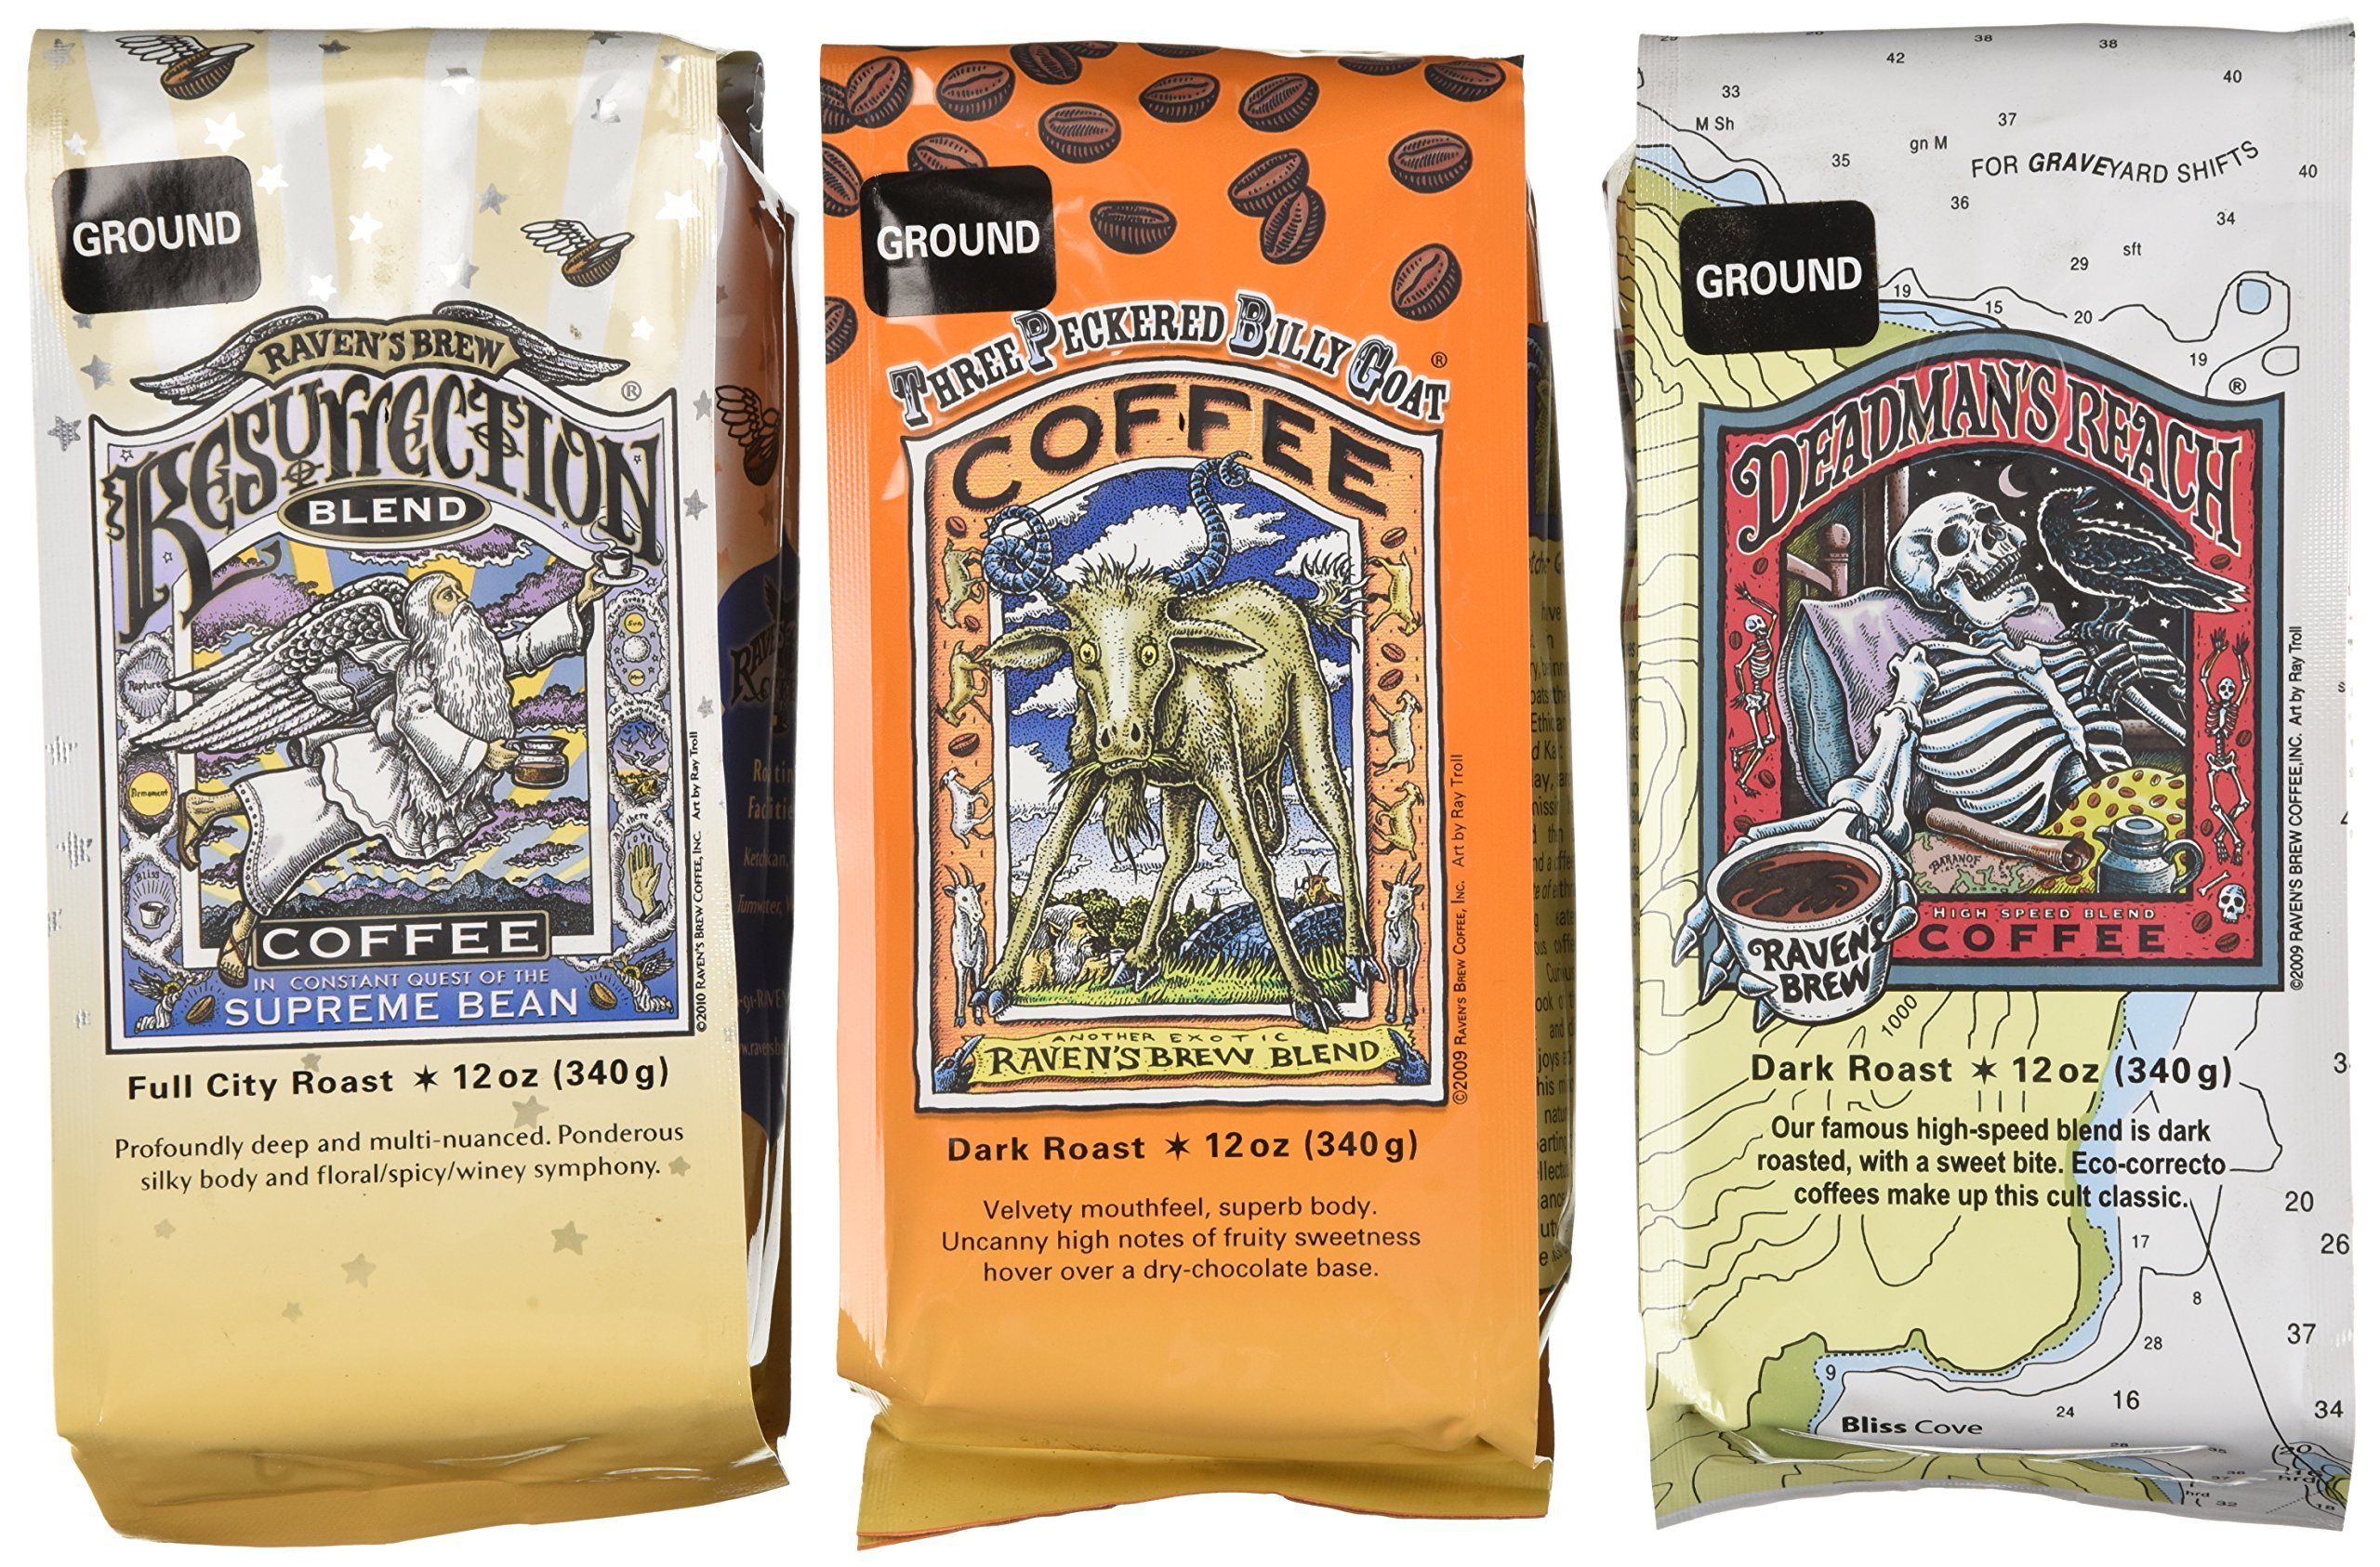 Raven's Brew Ground Coffee (Auto Drip) Variety Pack by Raven's Brew